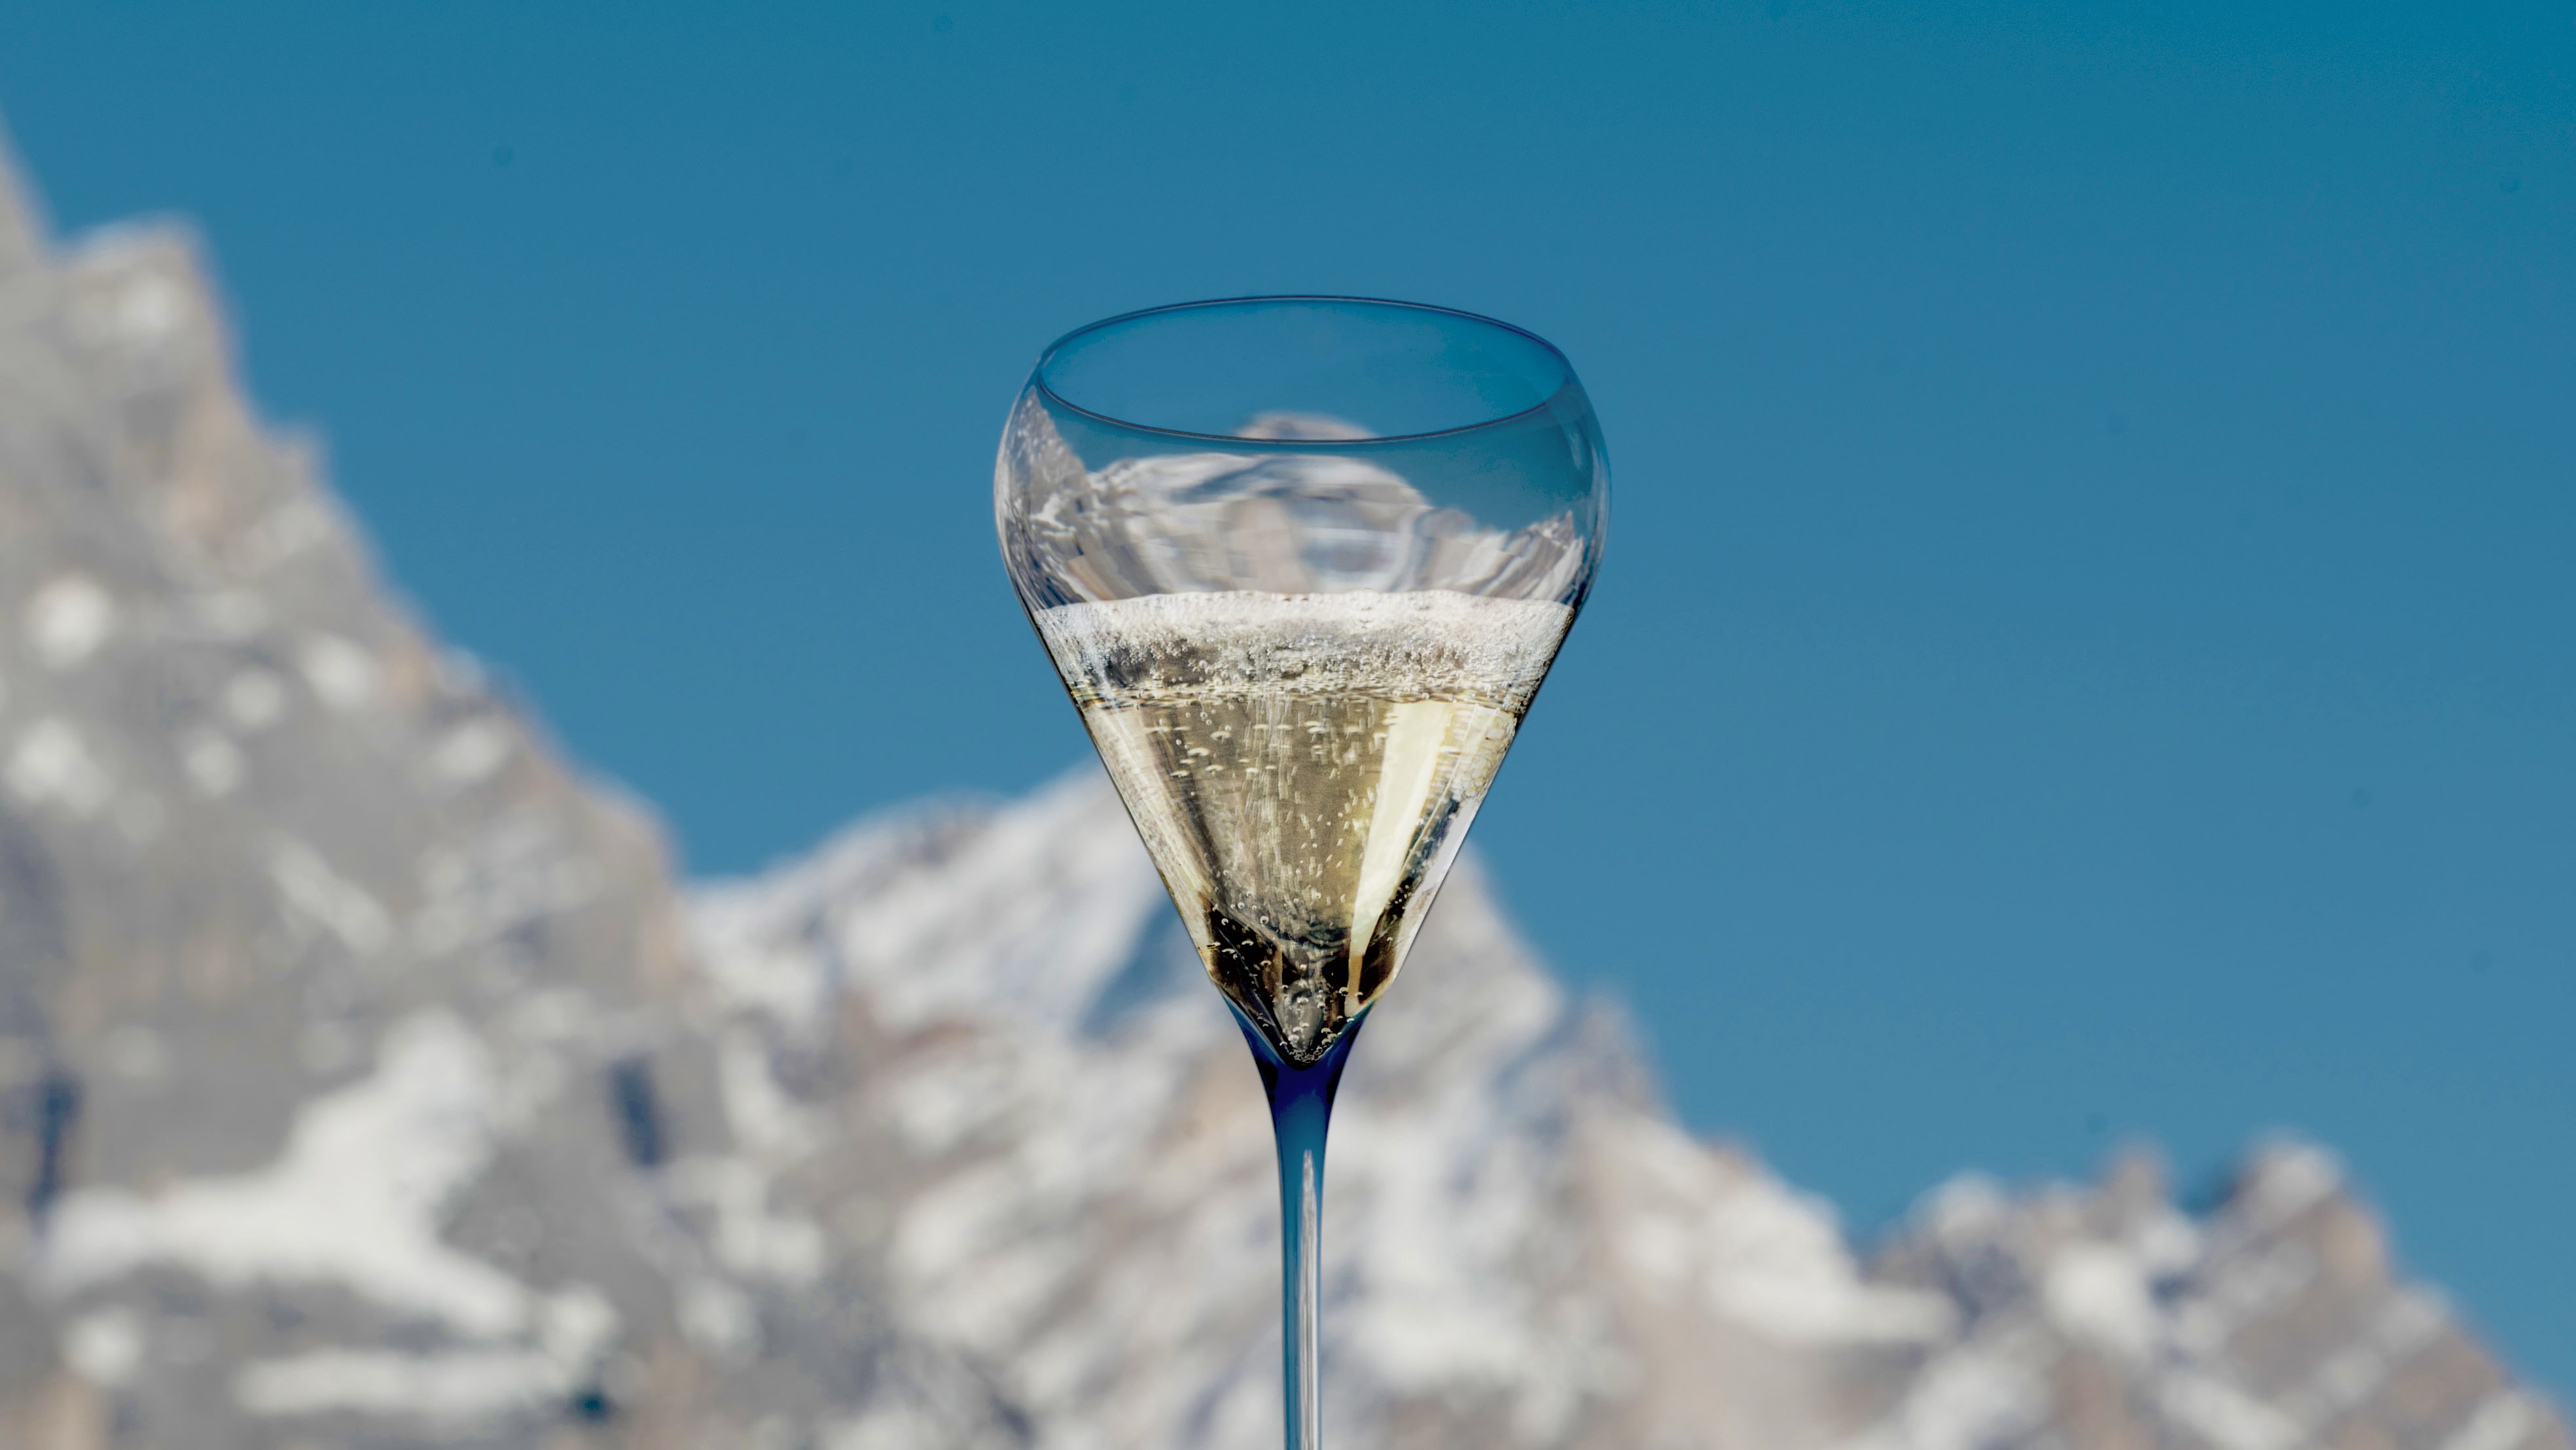 Prosecco DOC with the Dolomites